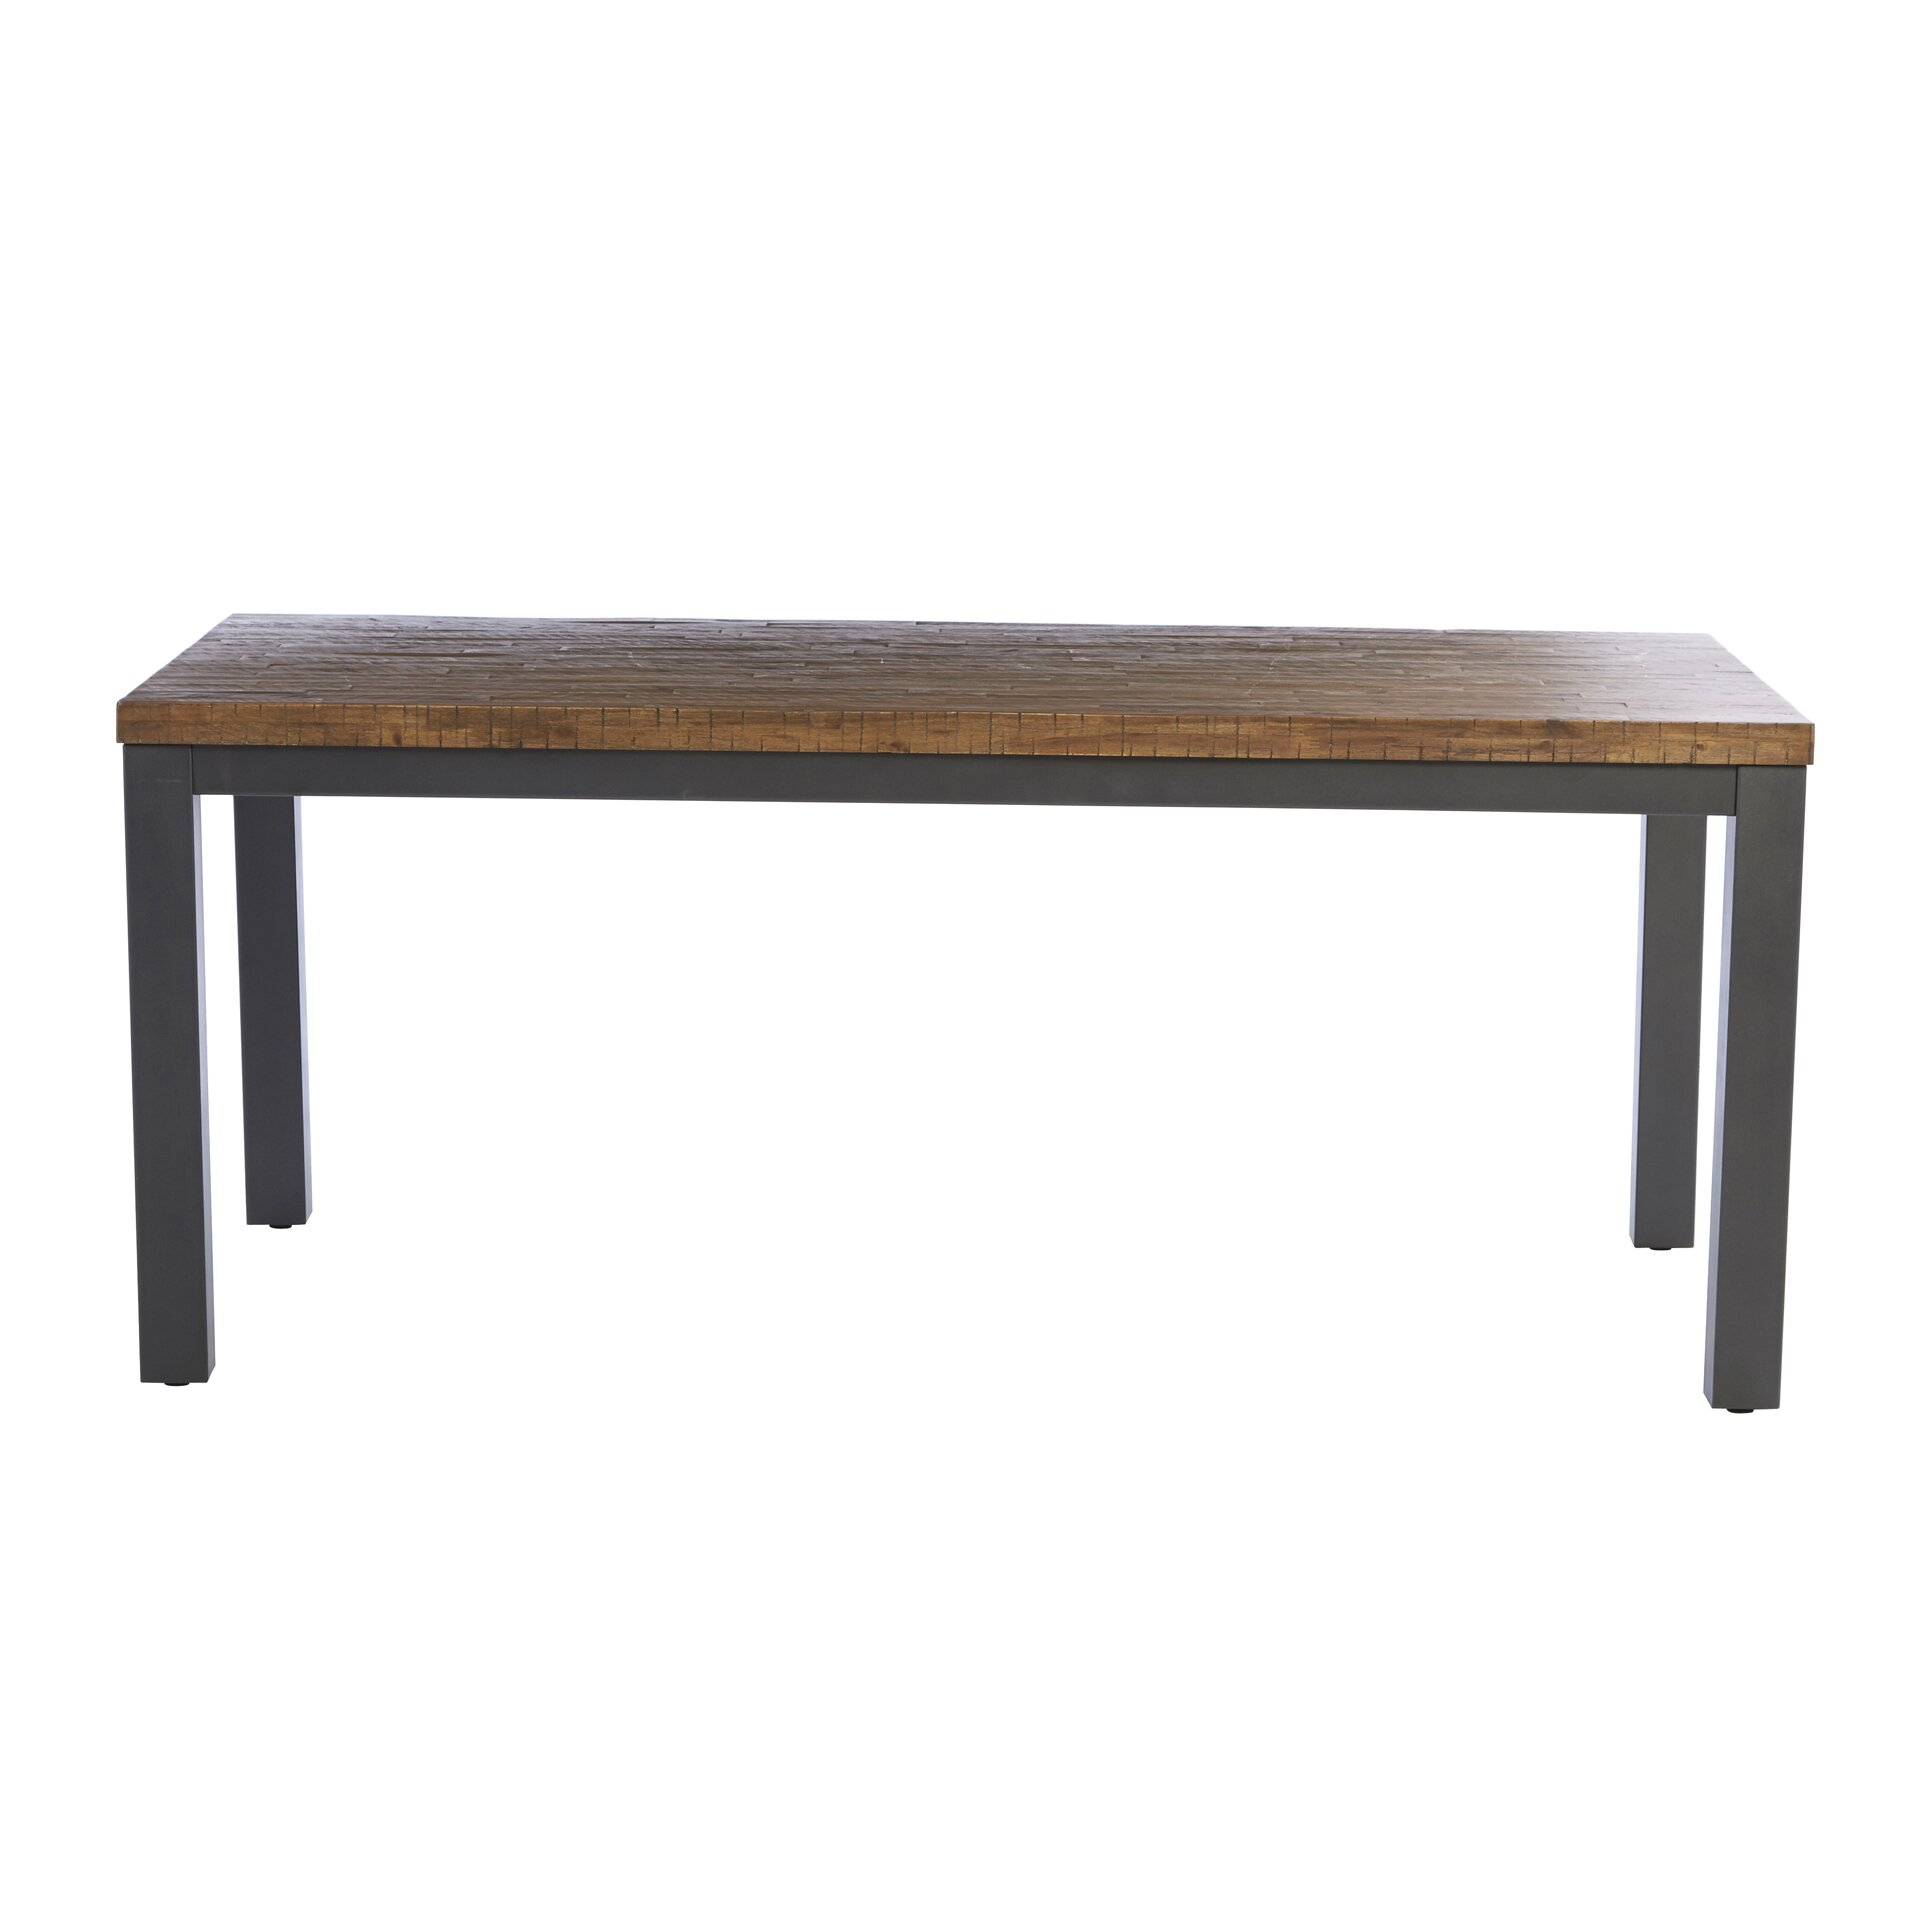 Mercury row dining table reviews wayfair supply for Html table row